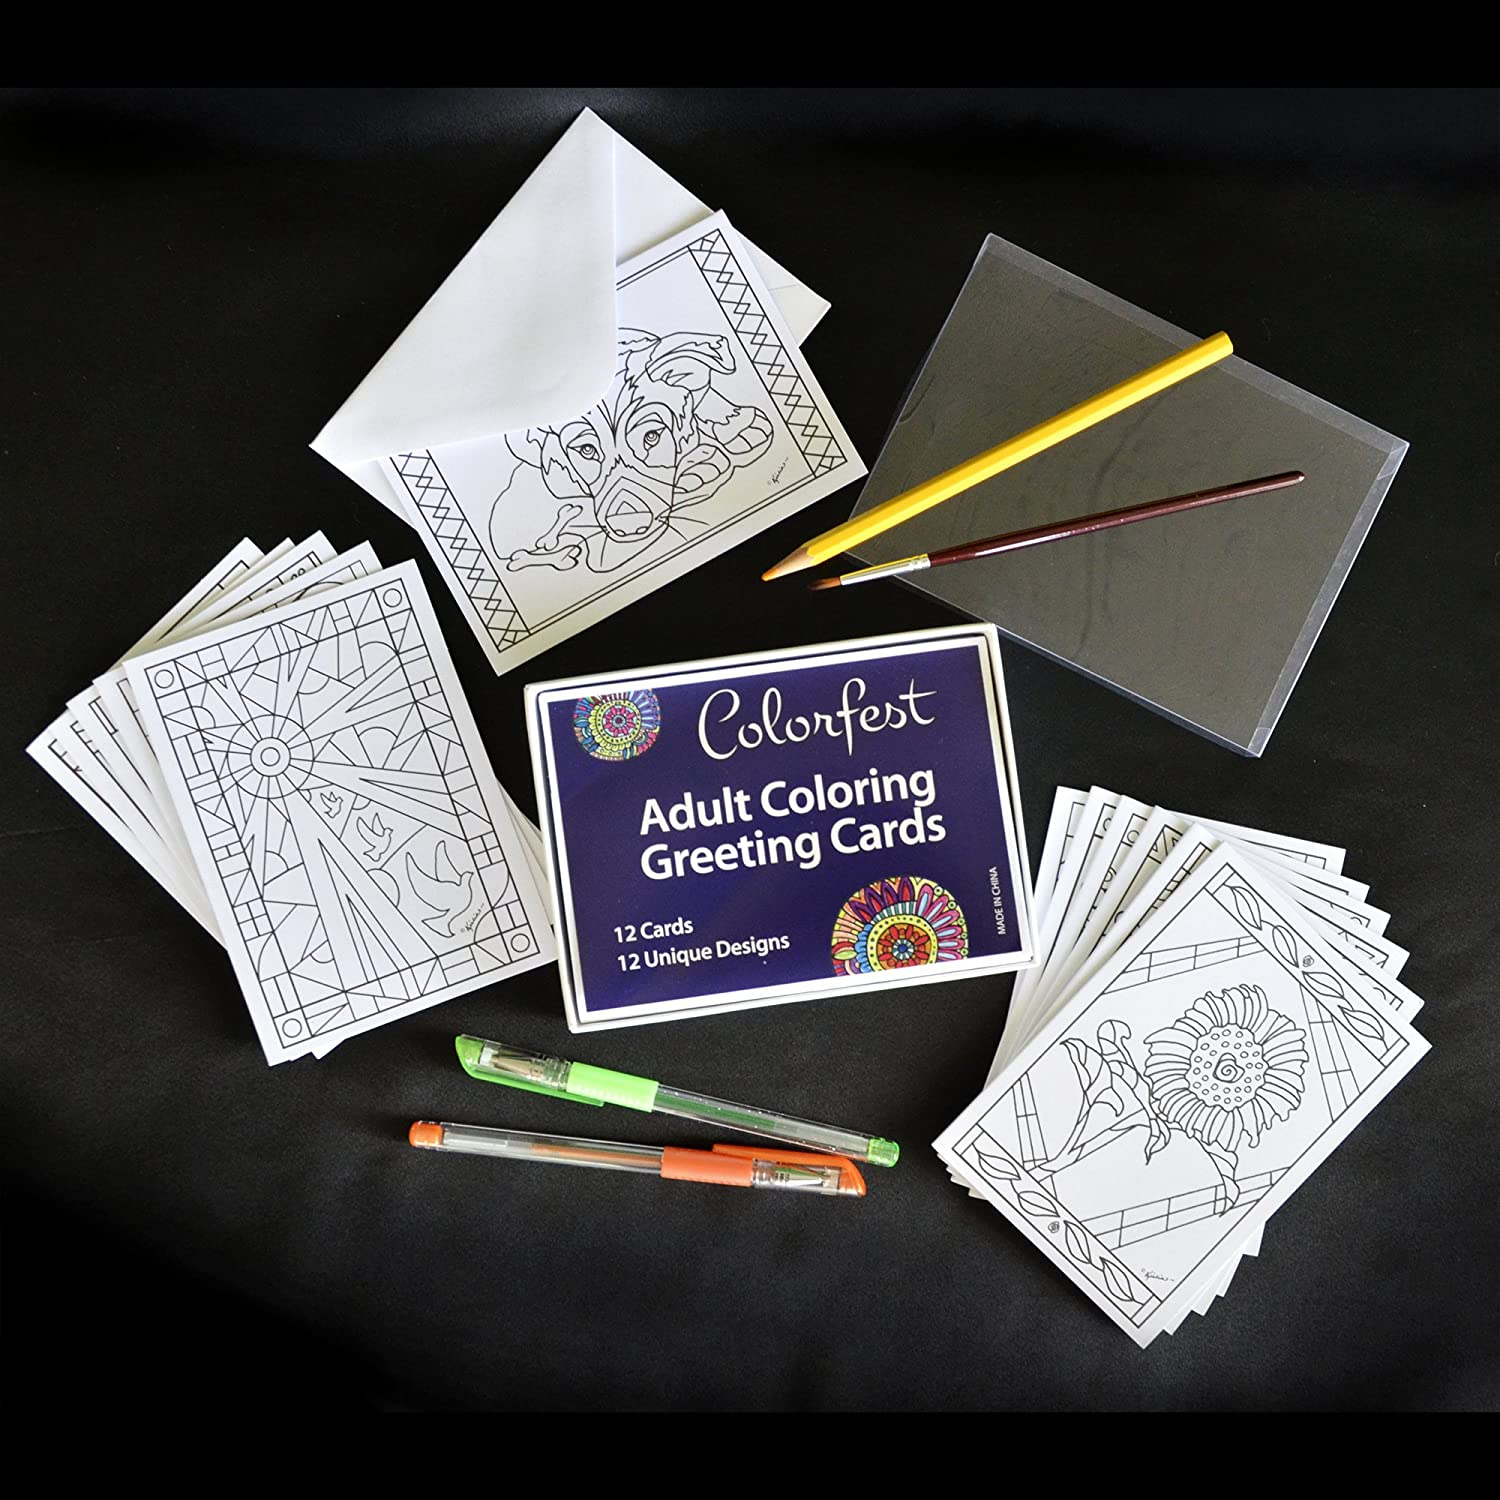 Amazon.com : Adult Coloring Greeting Cards by Colorfest Boxed Set of ...